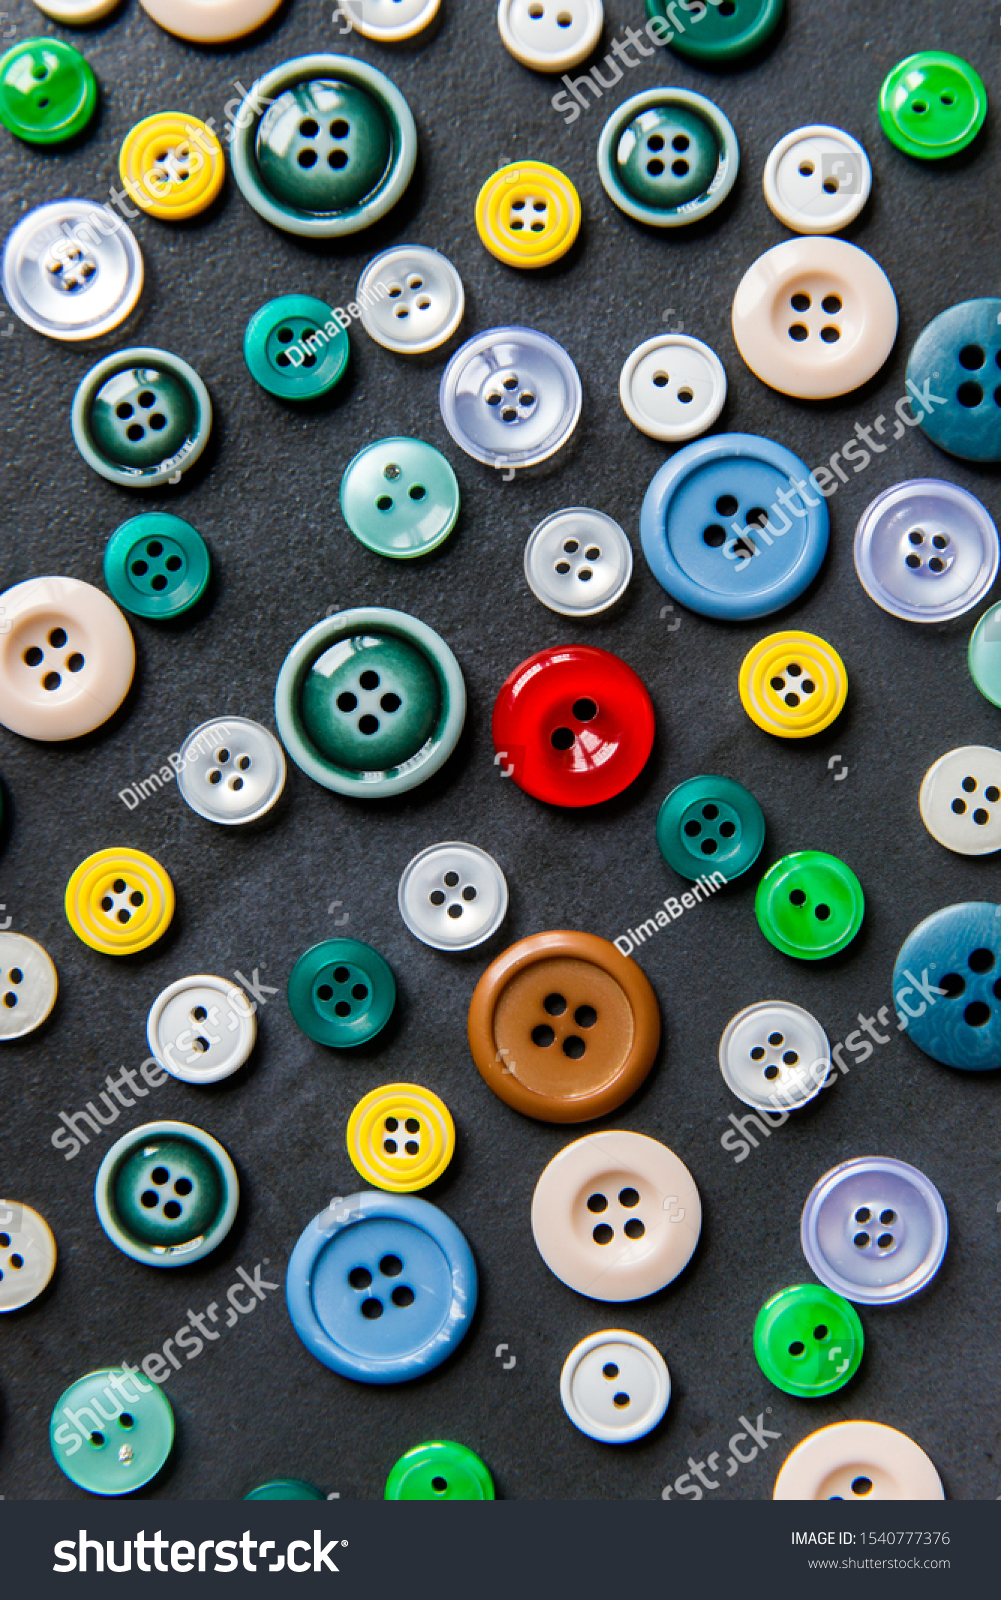 Colorful mixed sewing buttons on black background, flat lay. Top view.